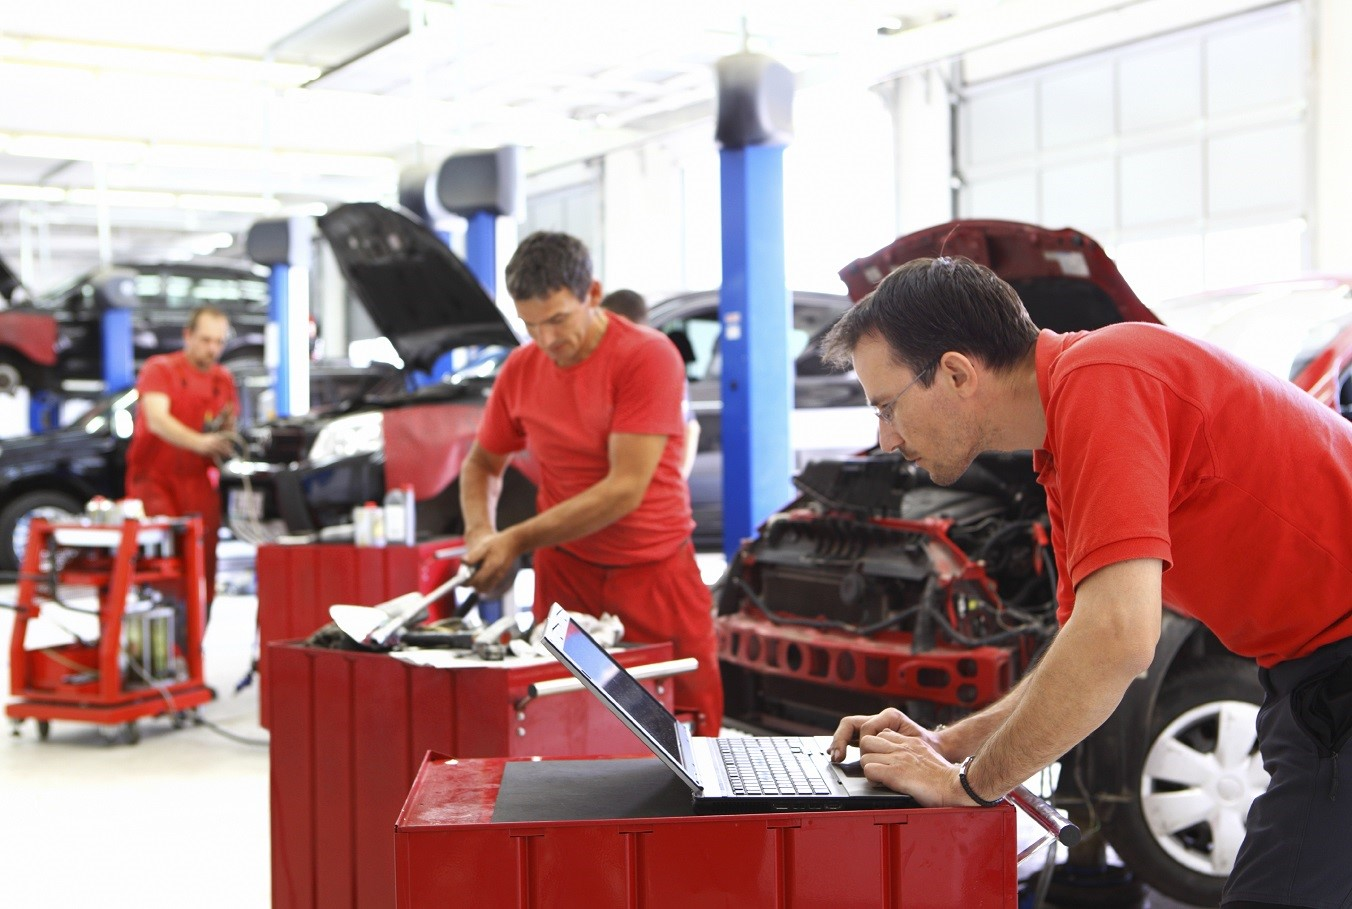 Free Check Engine Light Diagnostics Test Available At Newins Bay Shore Ford  Our Certified Technicians Can Help!